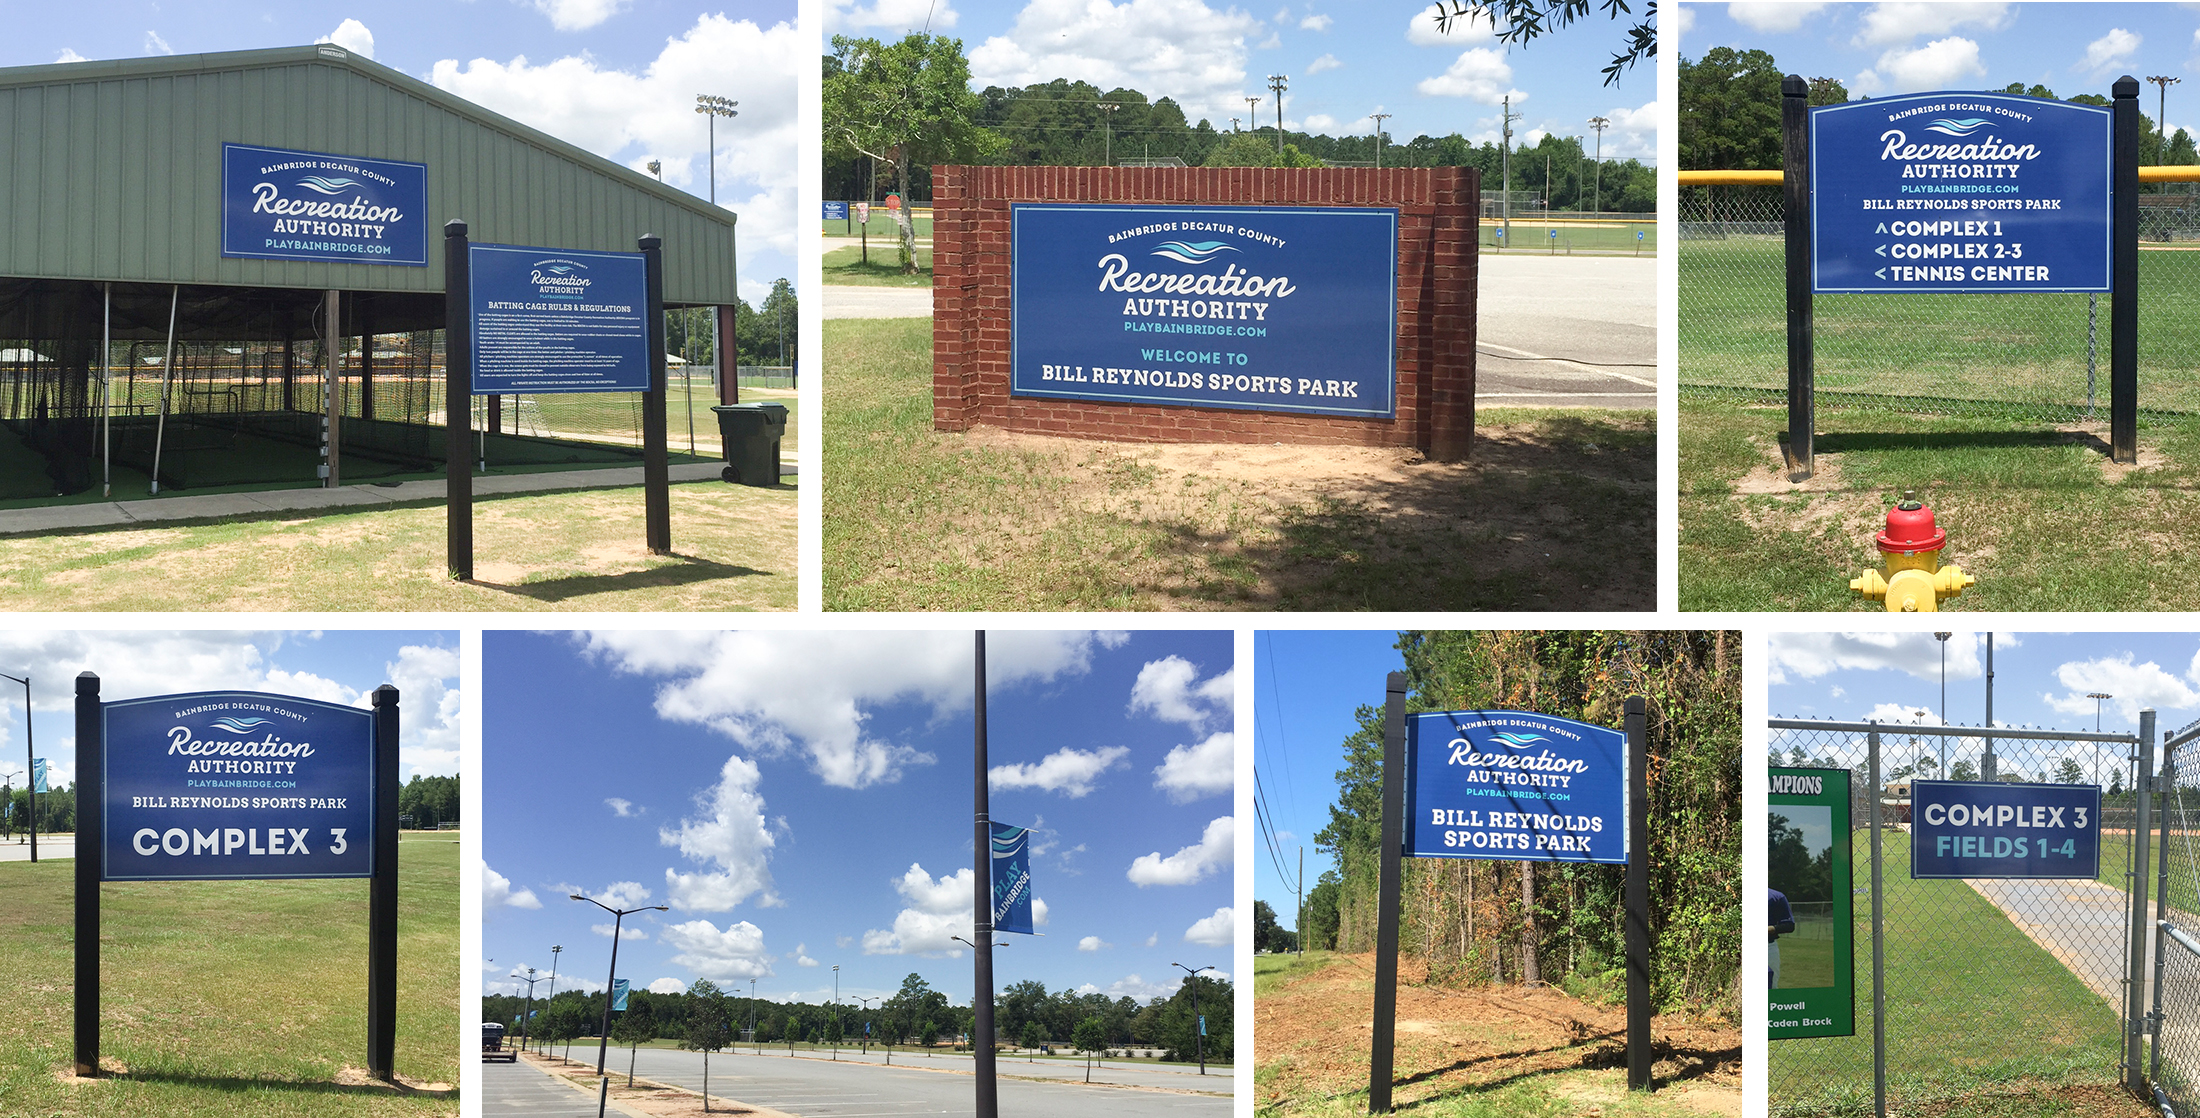 Bainbridge Decatur Co. Recreation Authority Sports Complex (Design, Print, Installation)